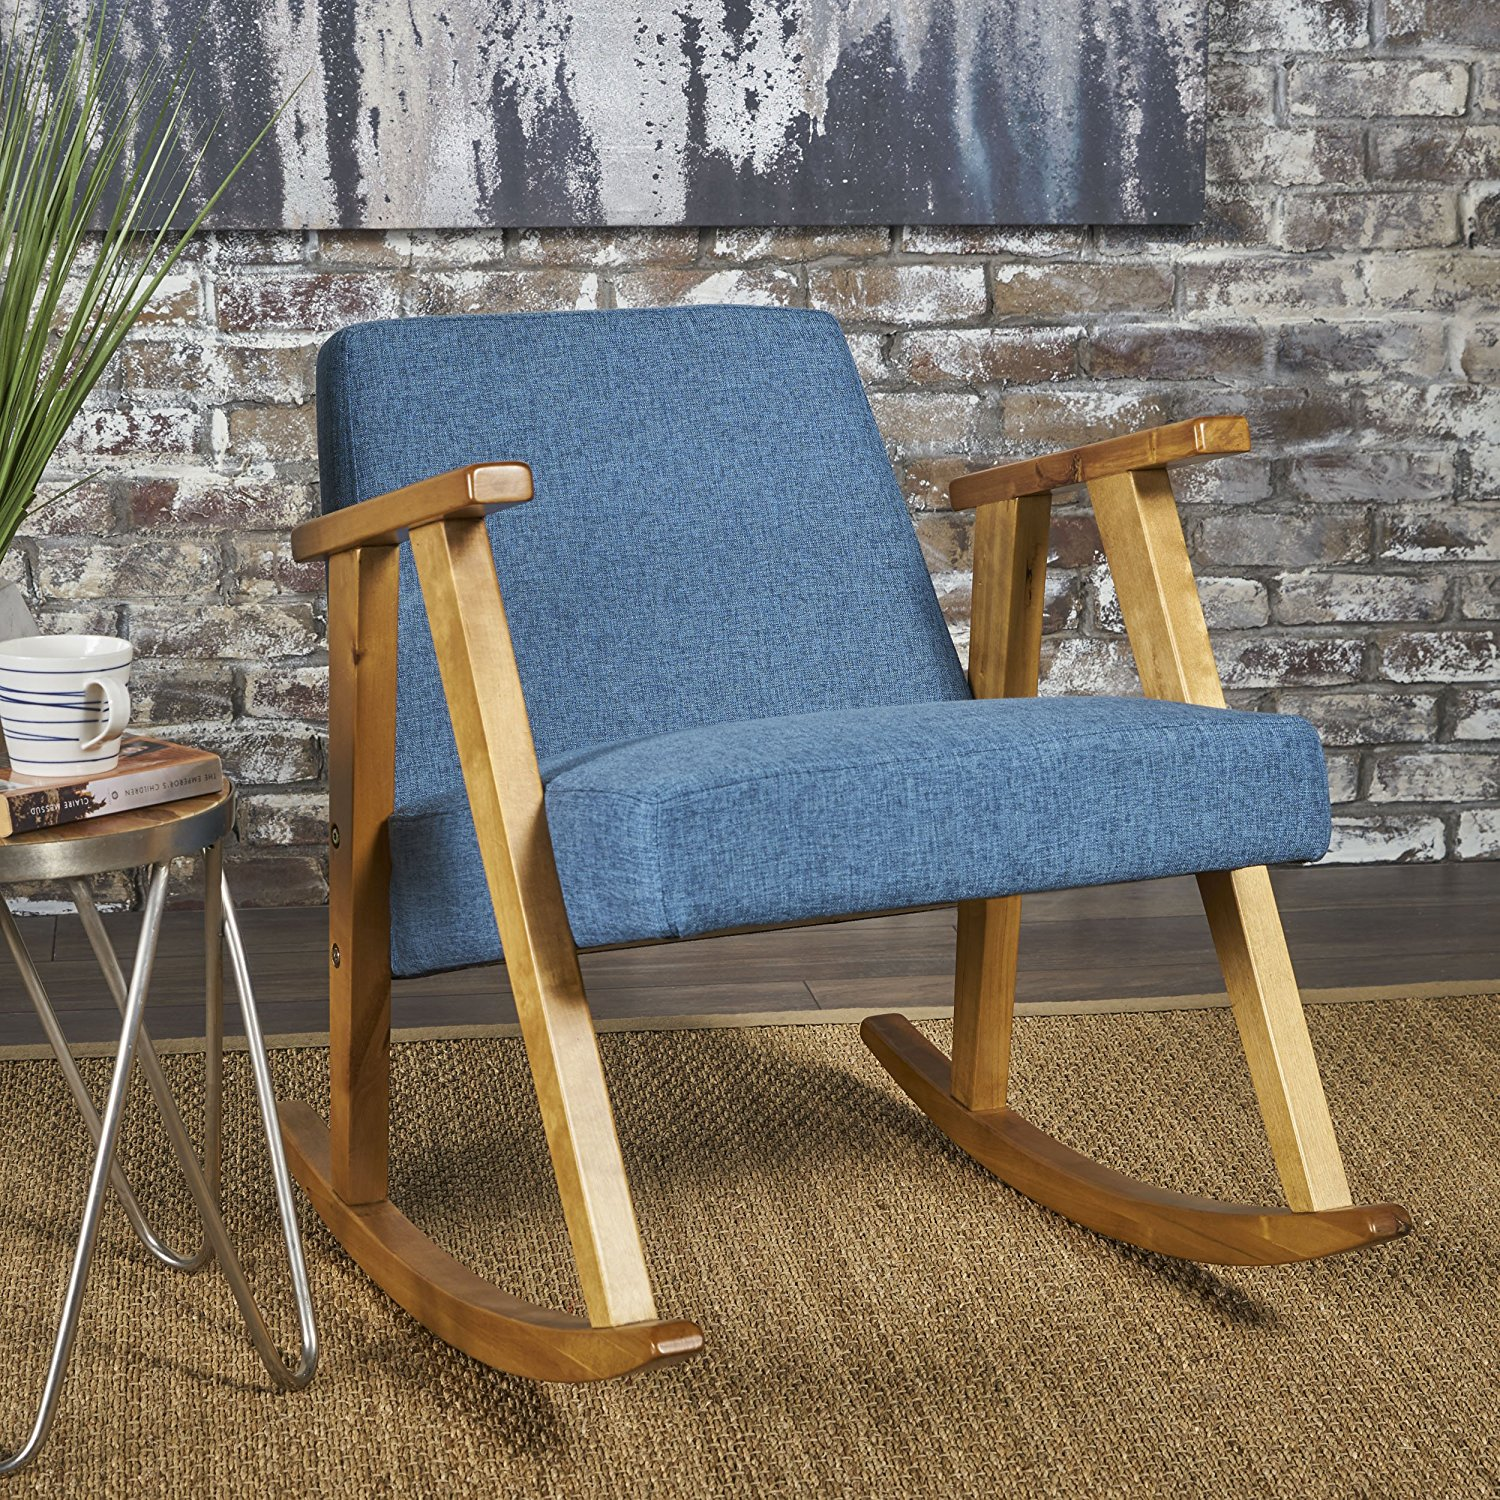 cheap rocking chair office chairs no arms modern find get quotations nero mid century danish styling upholstered in muted blue fabric